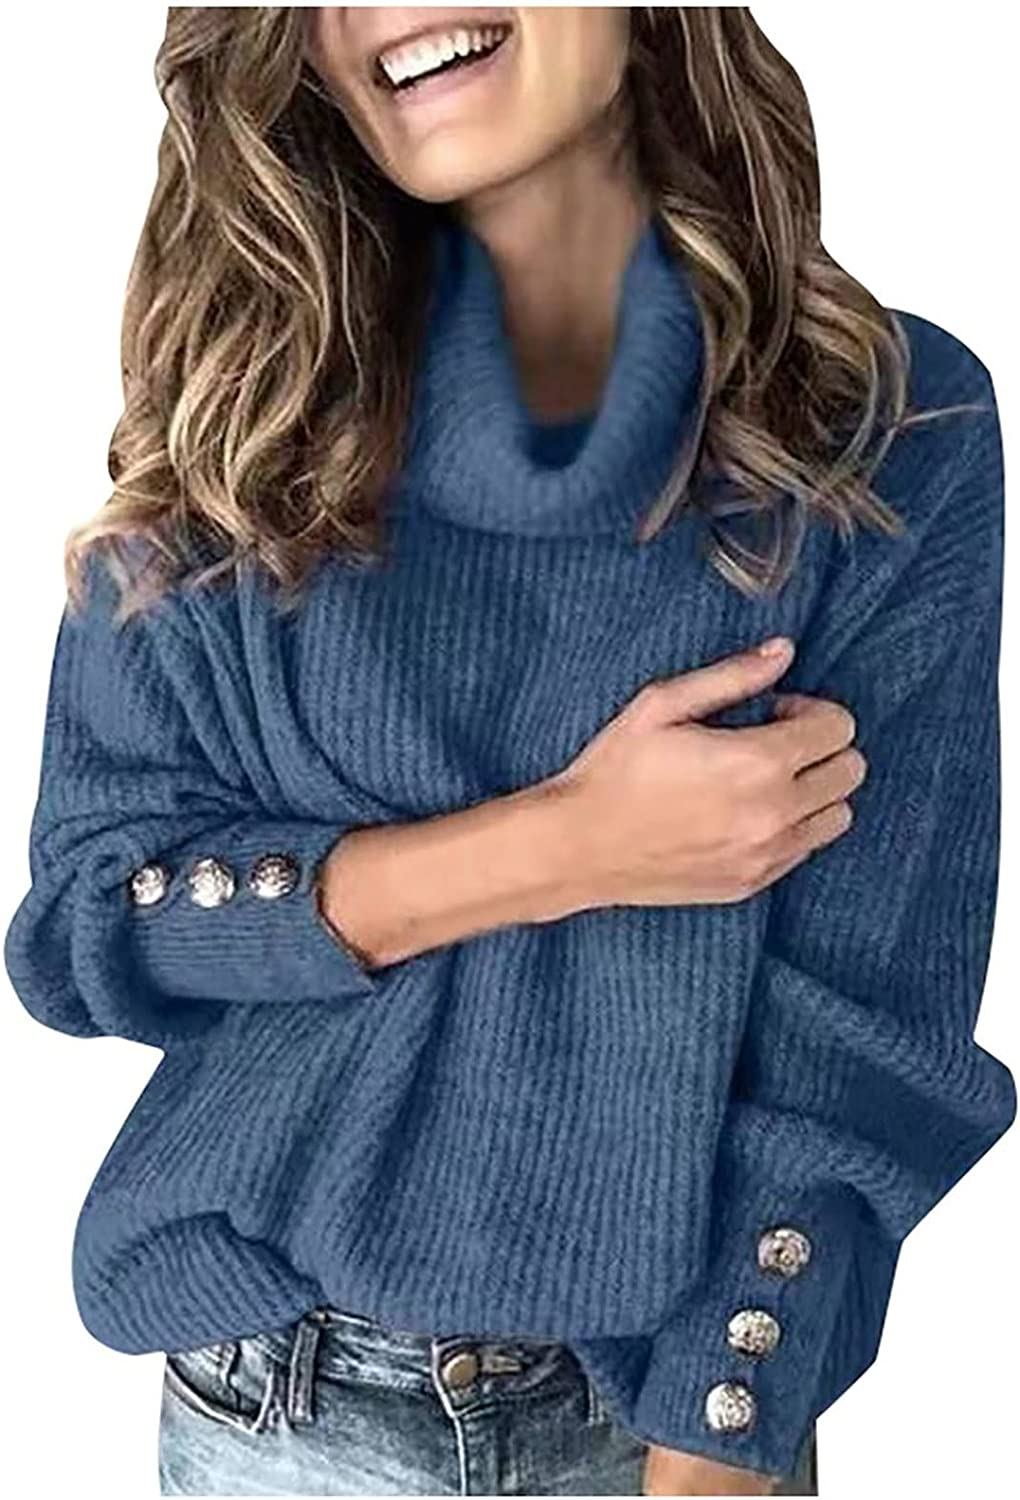 Womens Long Sleeve Turtleneck Sweaters Casual Solid Knit Ribbed Fall Winter Pullover Loose Oversized Jumper Tops